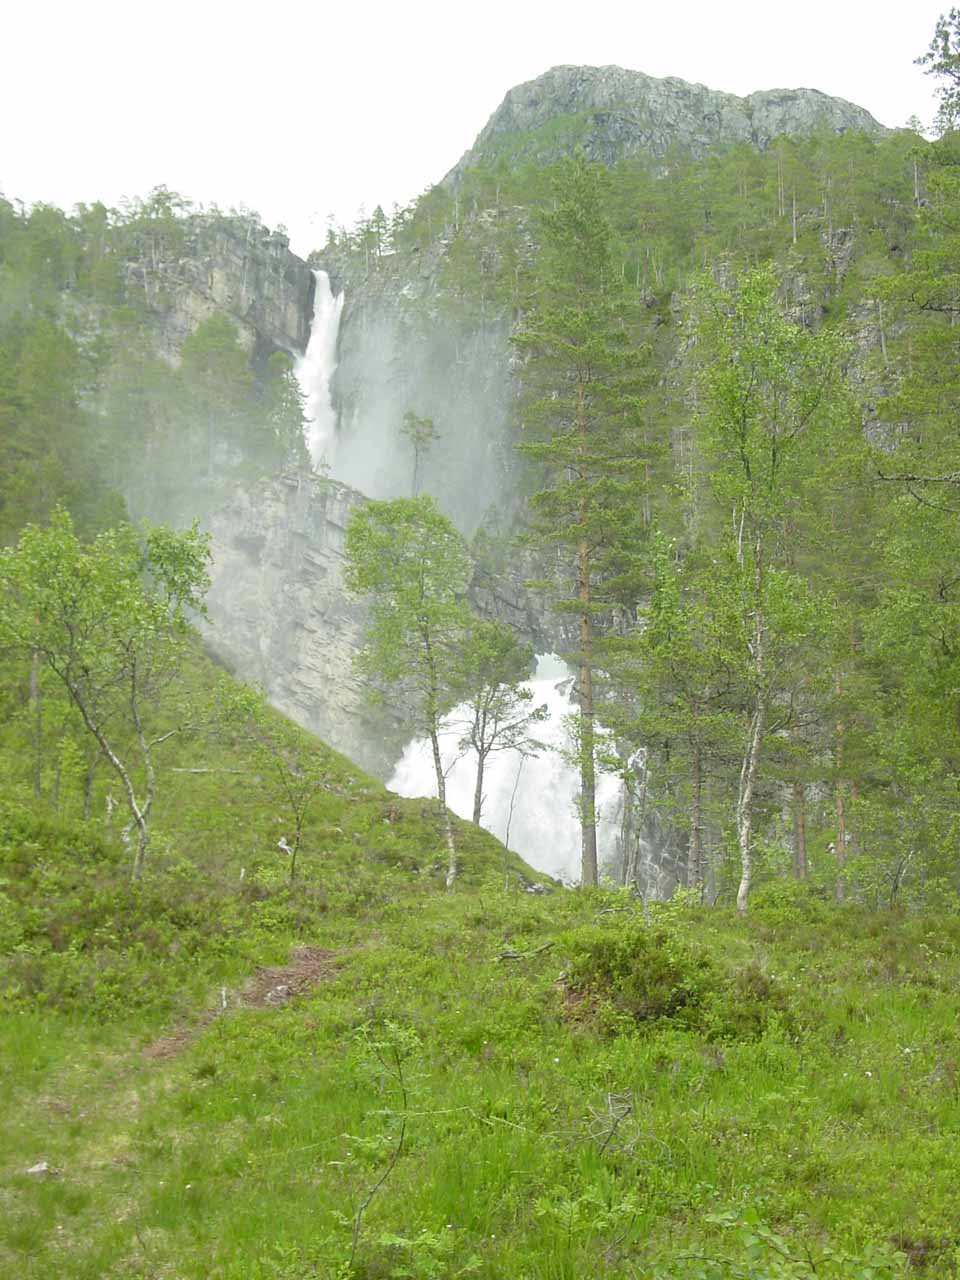 Not much further before I get to the real wet part of the walk near Nauståfossen